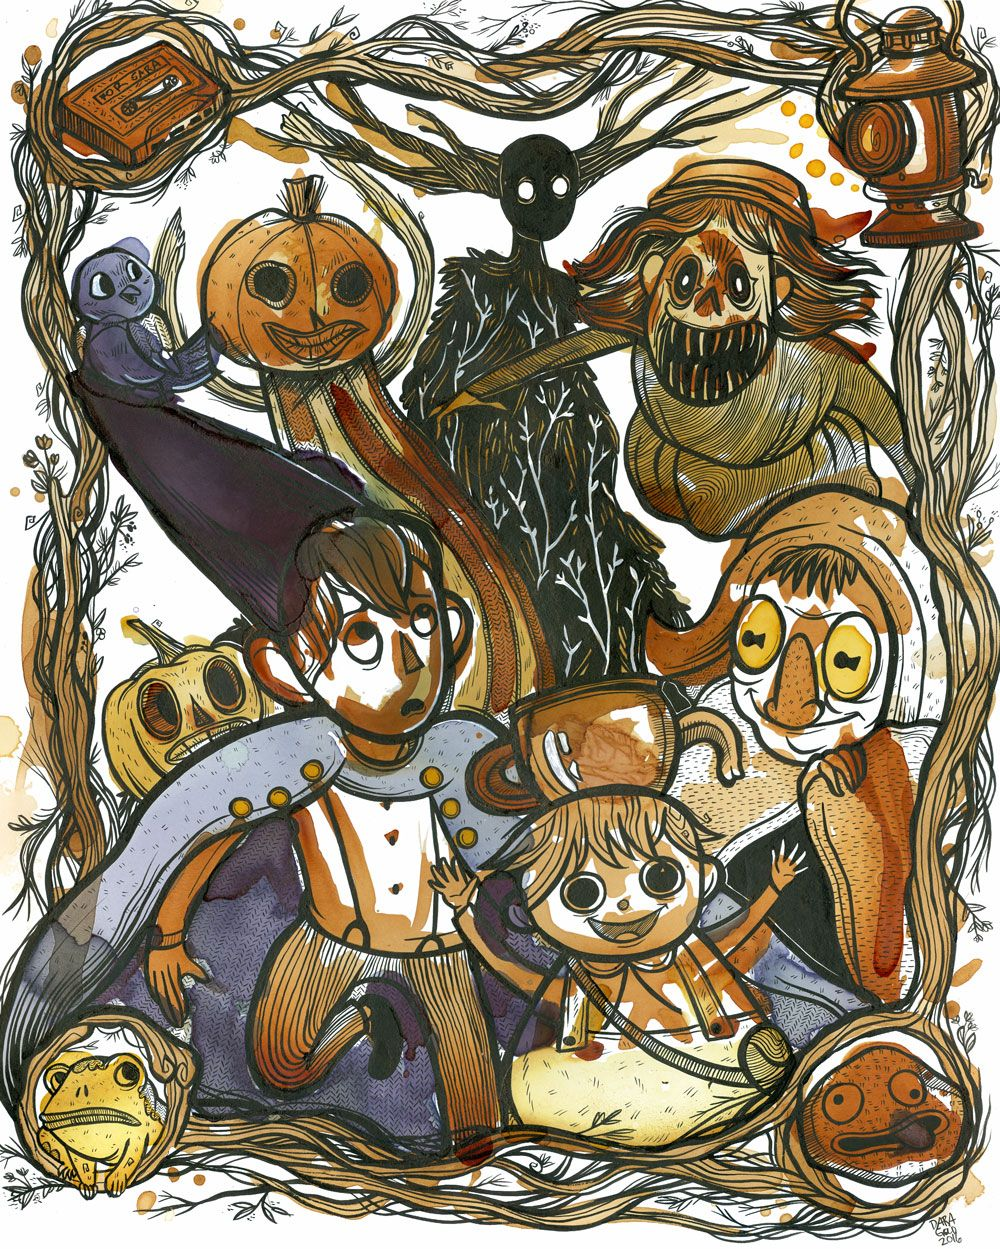 Over The Garden Wall Illustration Created With Orange Pekoe Oolong Multiple Types Yame Sencha Raspberry Cranberry Tea And Ink I Was So Surprised And Pleased With The Variety And Strength Of Colour